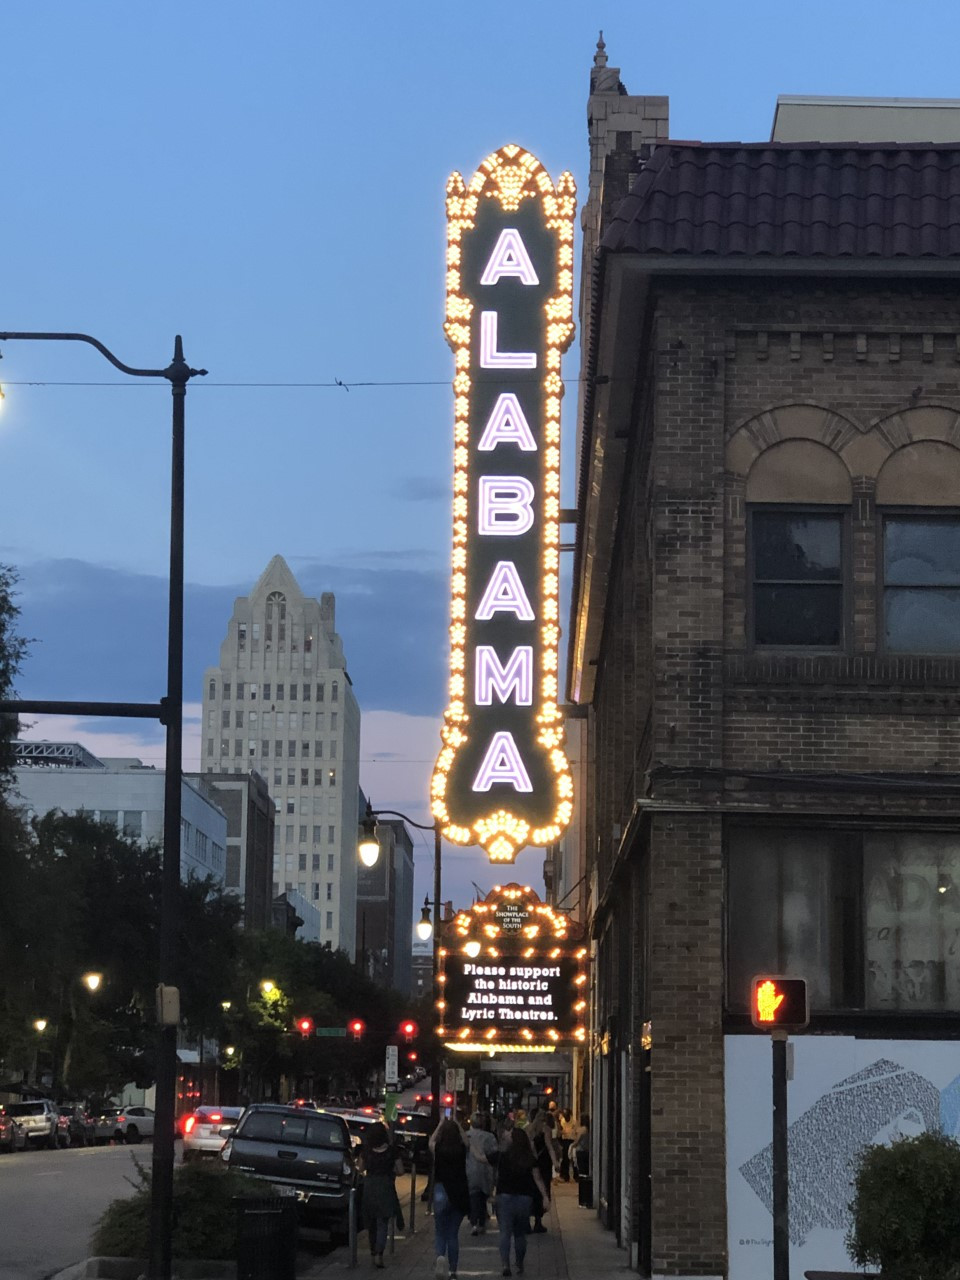 Alabama Theater Christmas Vacation Dec 8,2020 Tickets for Christmas movies at the Alabama Theatre go on sale | WBMA